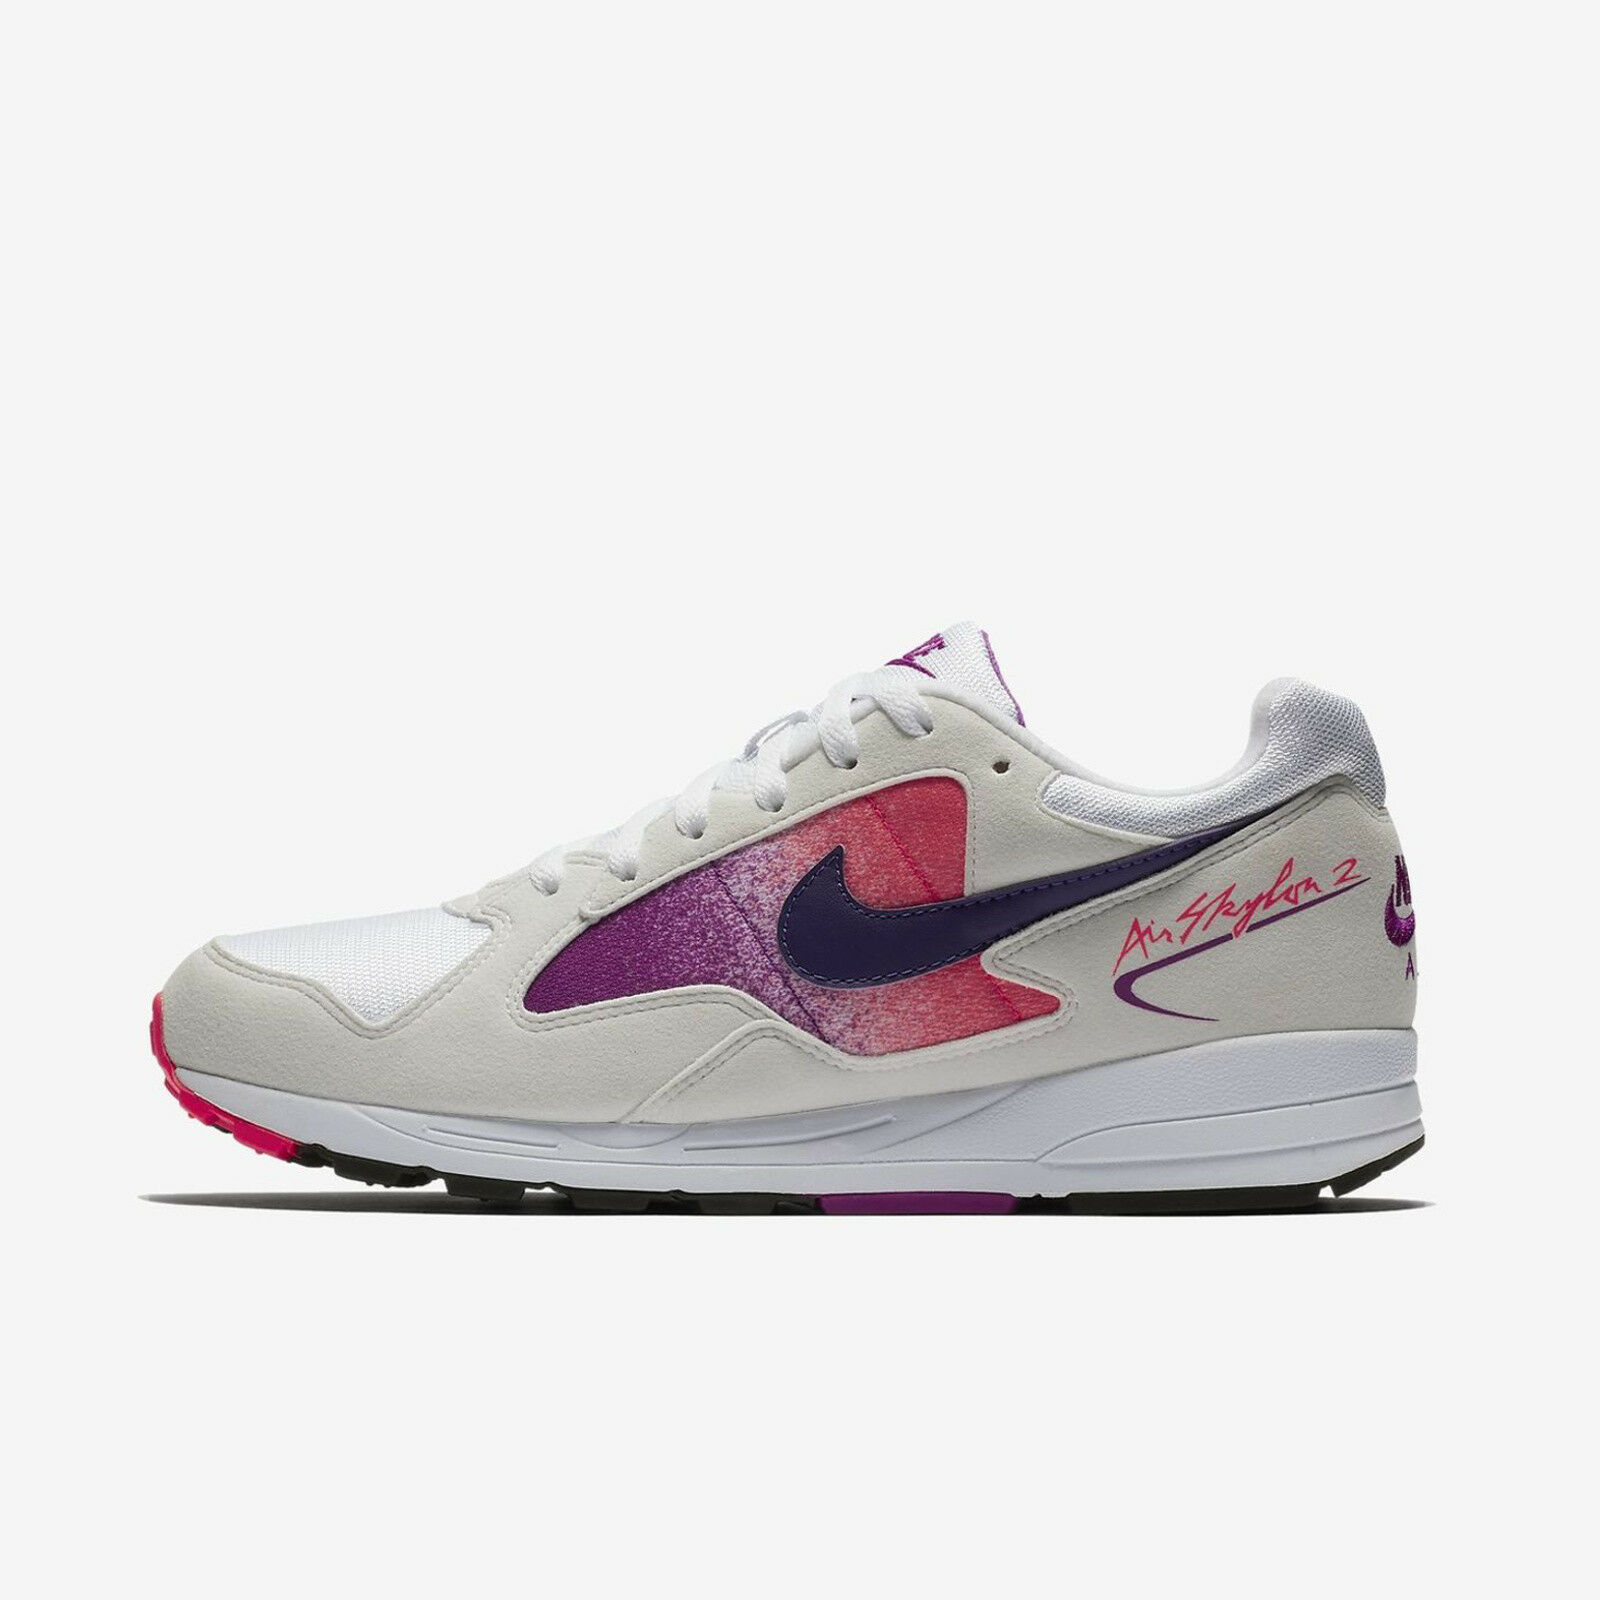 NIKE AIR SKYLON II AO1551-103 WHITE COURT PURPLE SOLAR RED 2